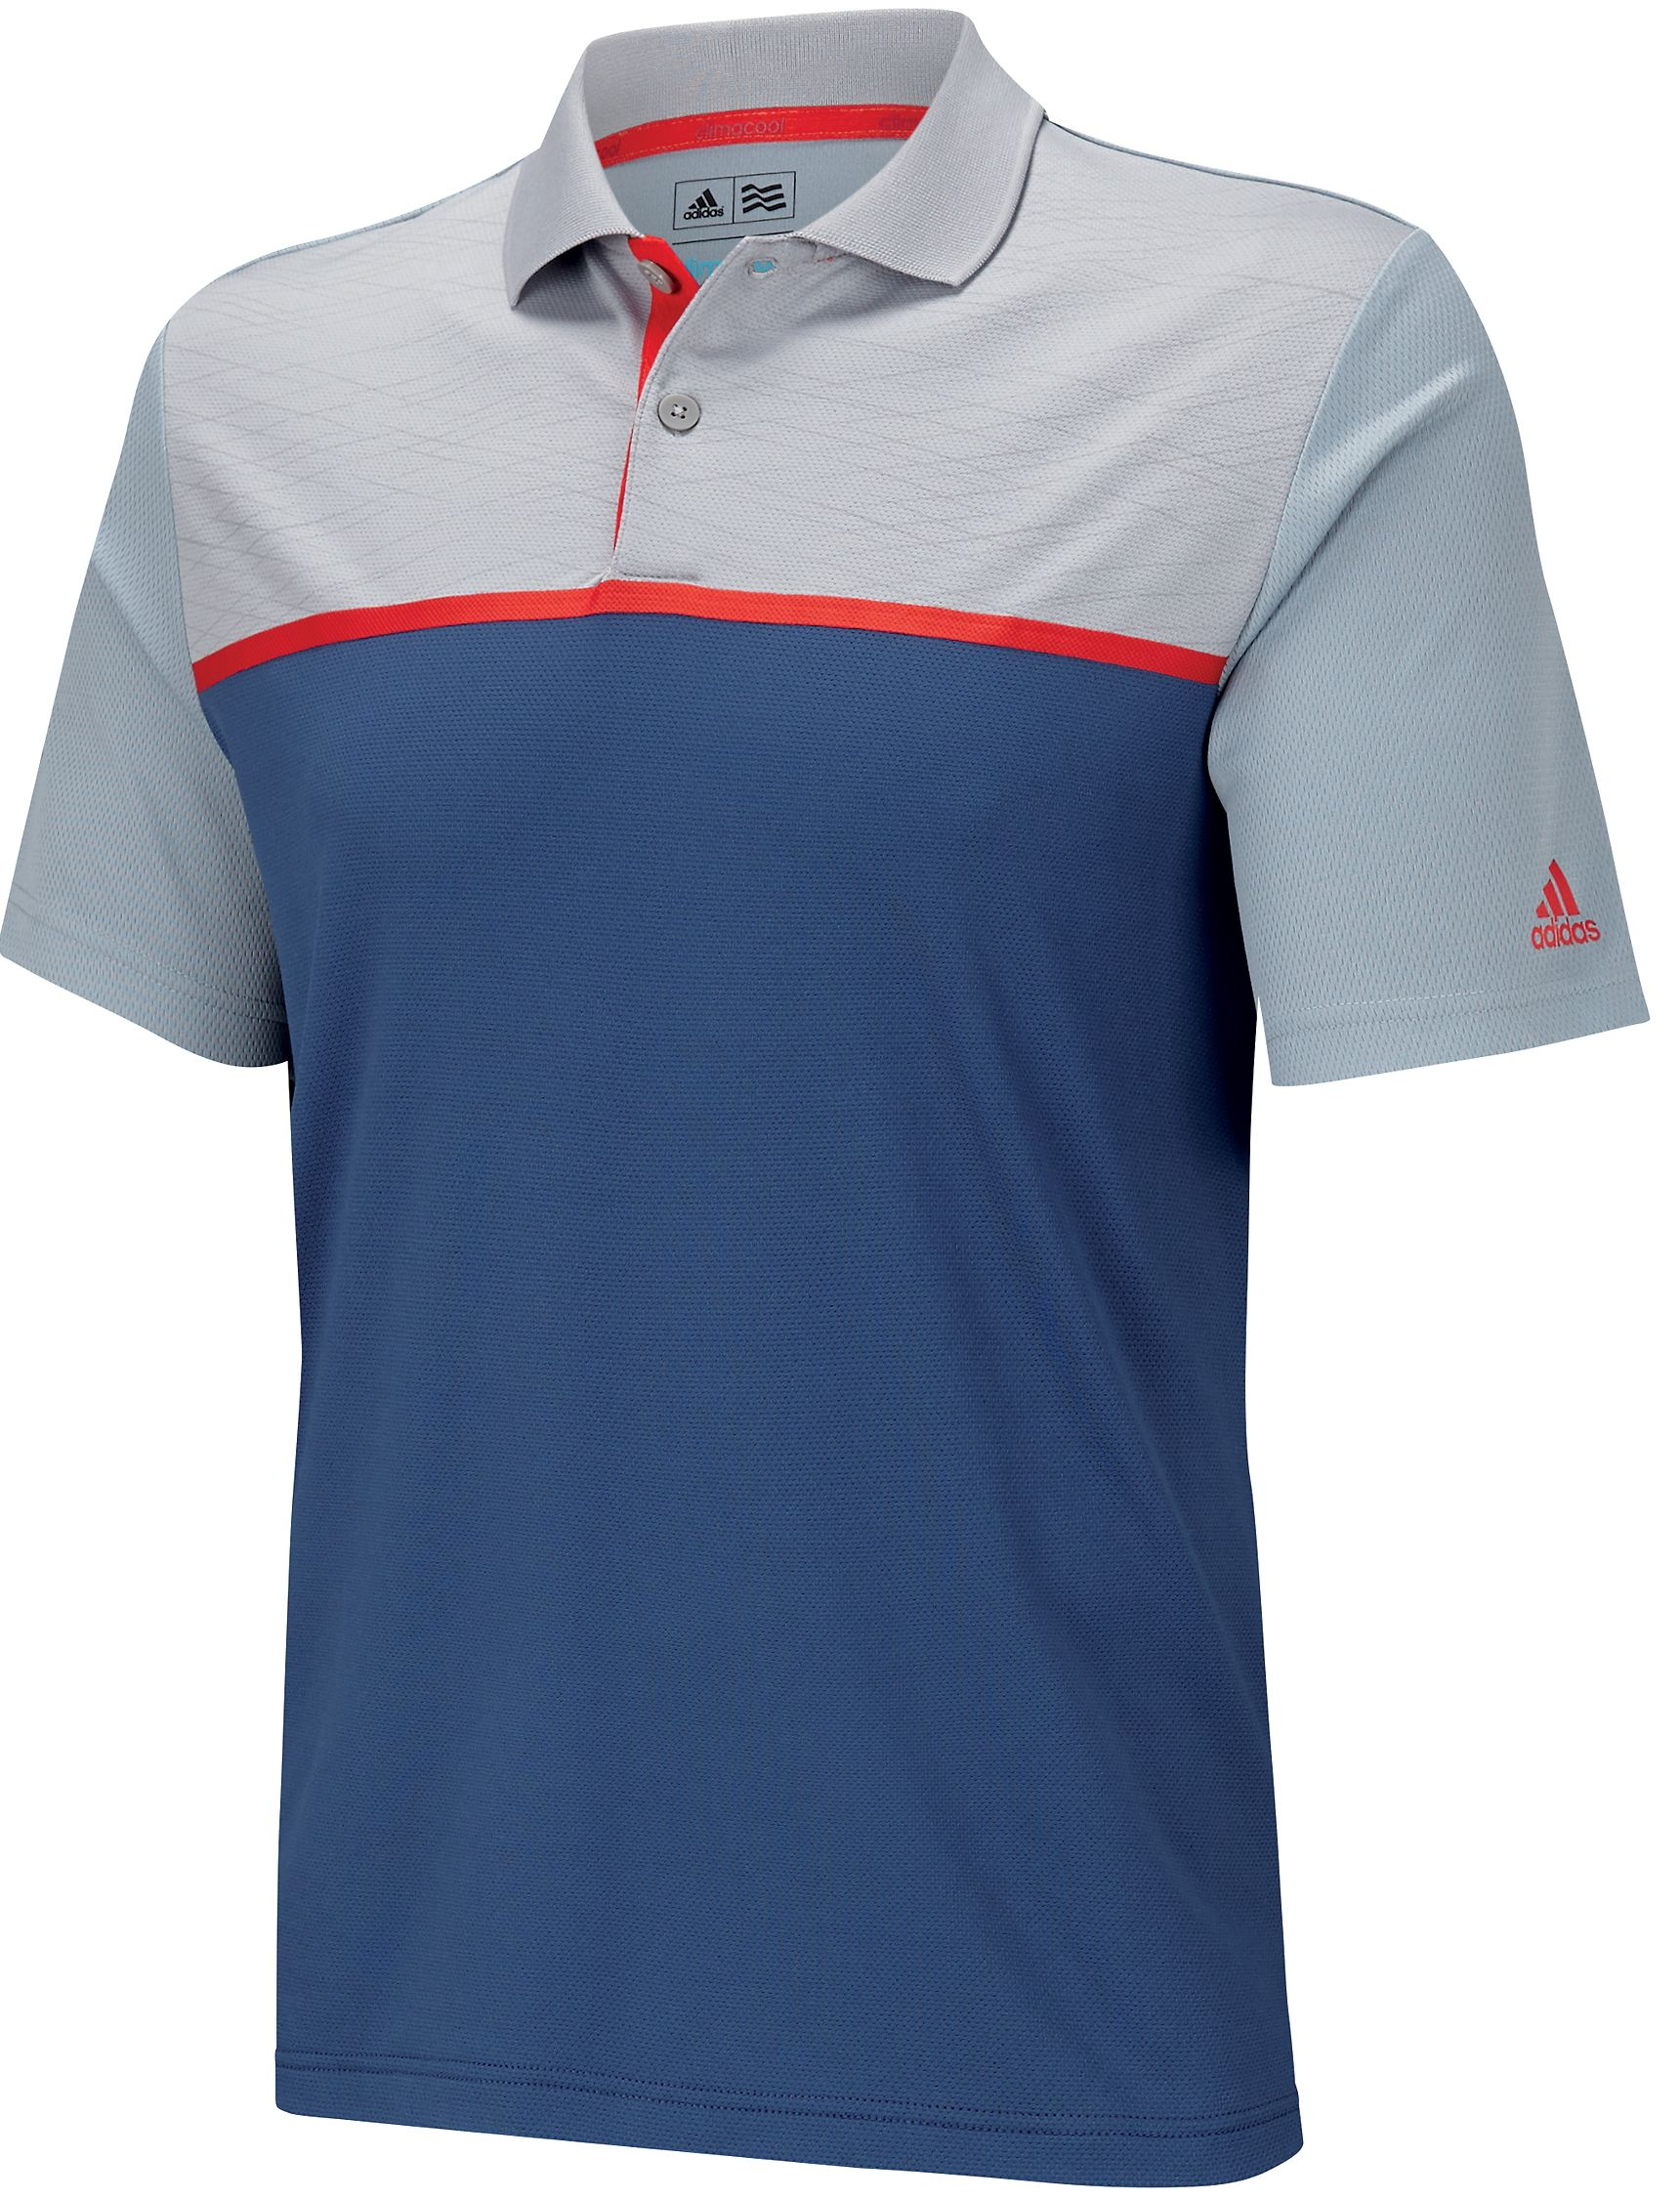 Adidas Golf ClimaCool Energy Colorblock Polo Golf Shirt 2015 Closeouts Mens   fcf9c0e3e9961